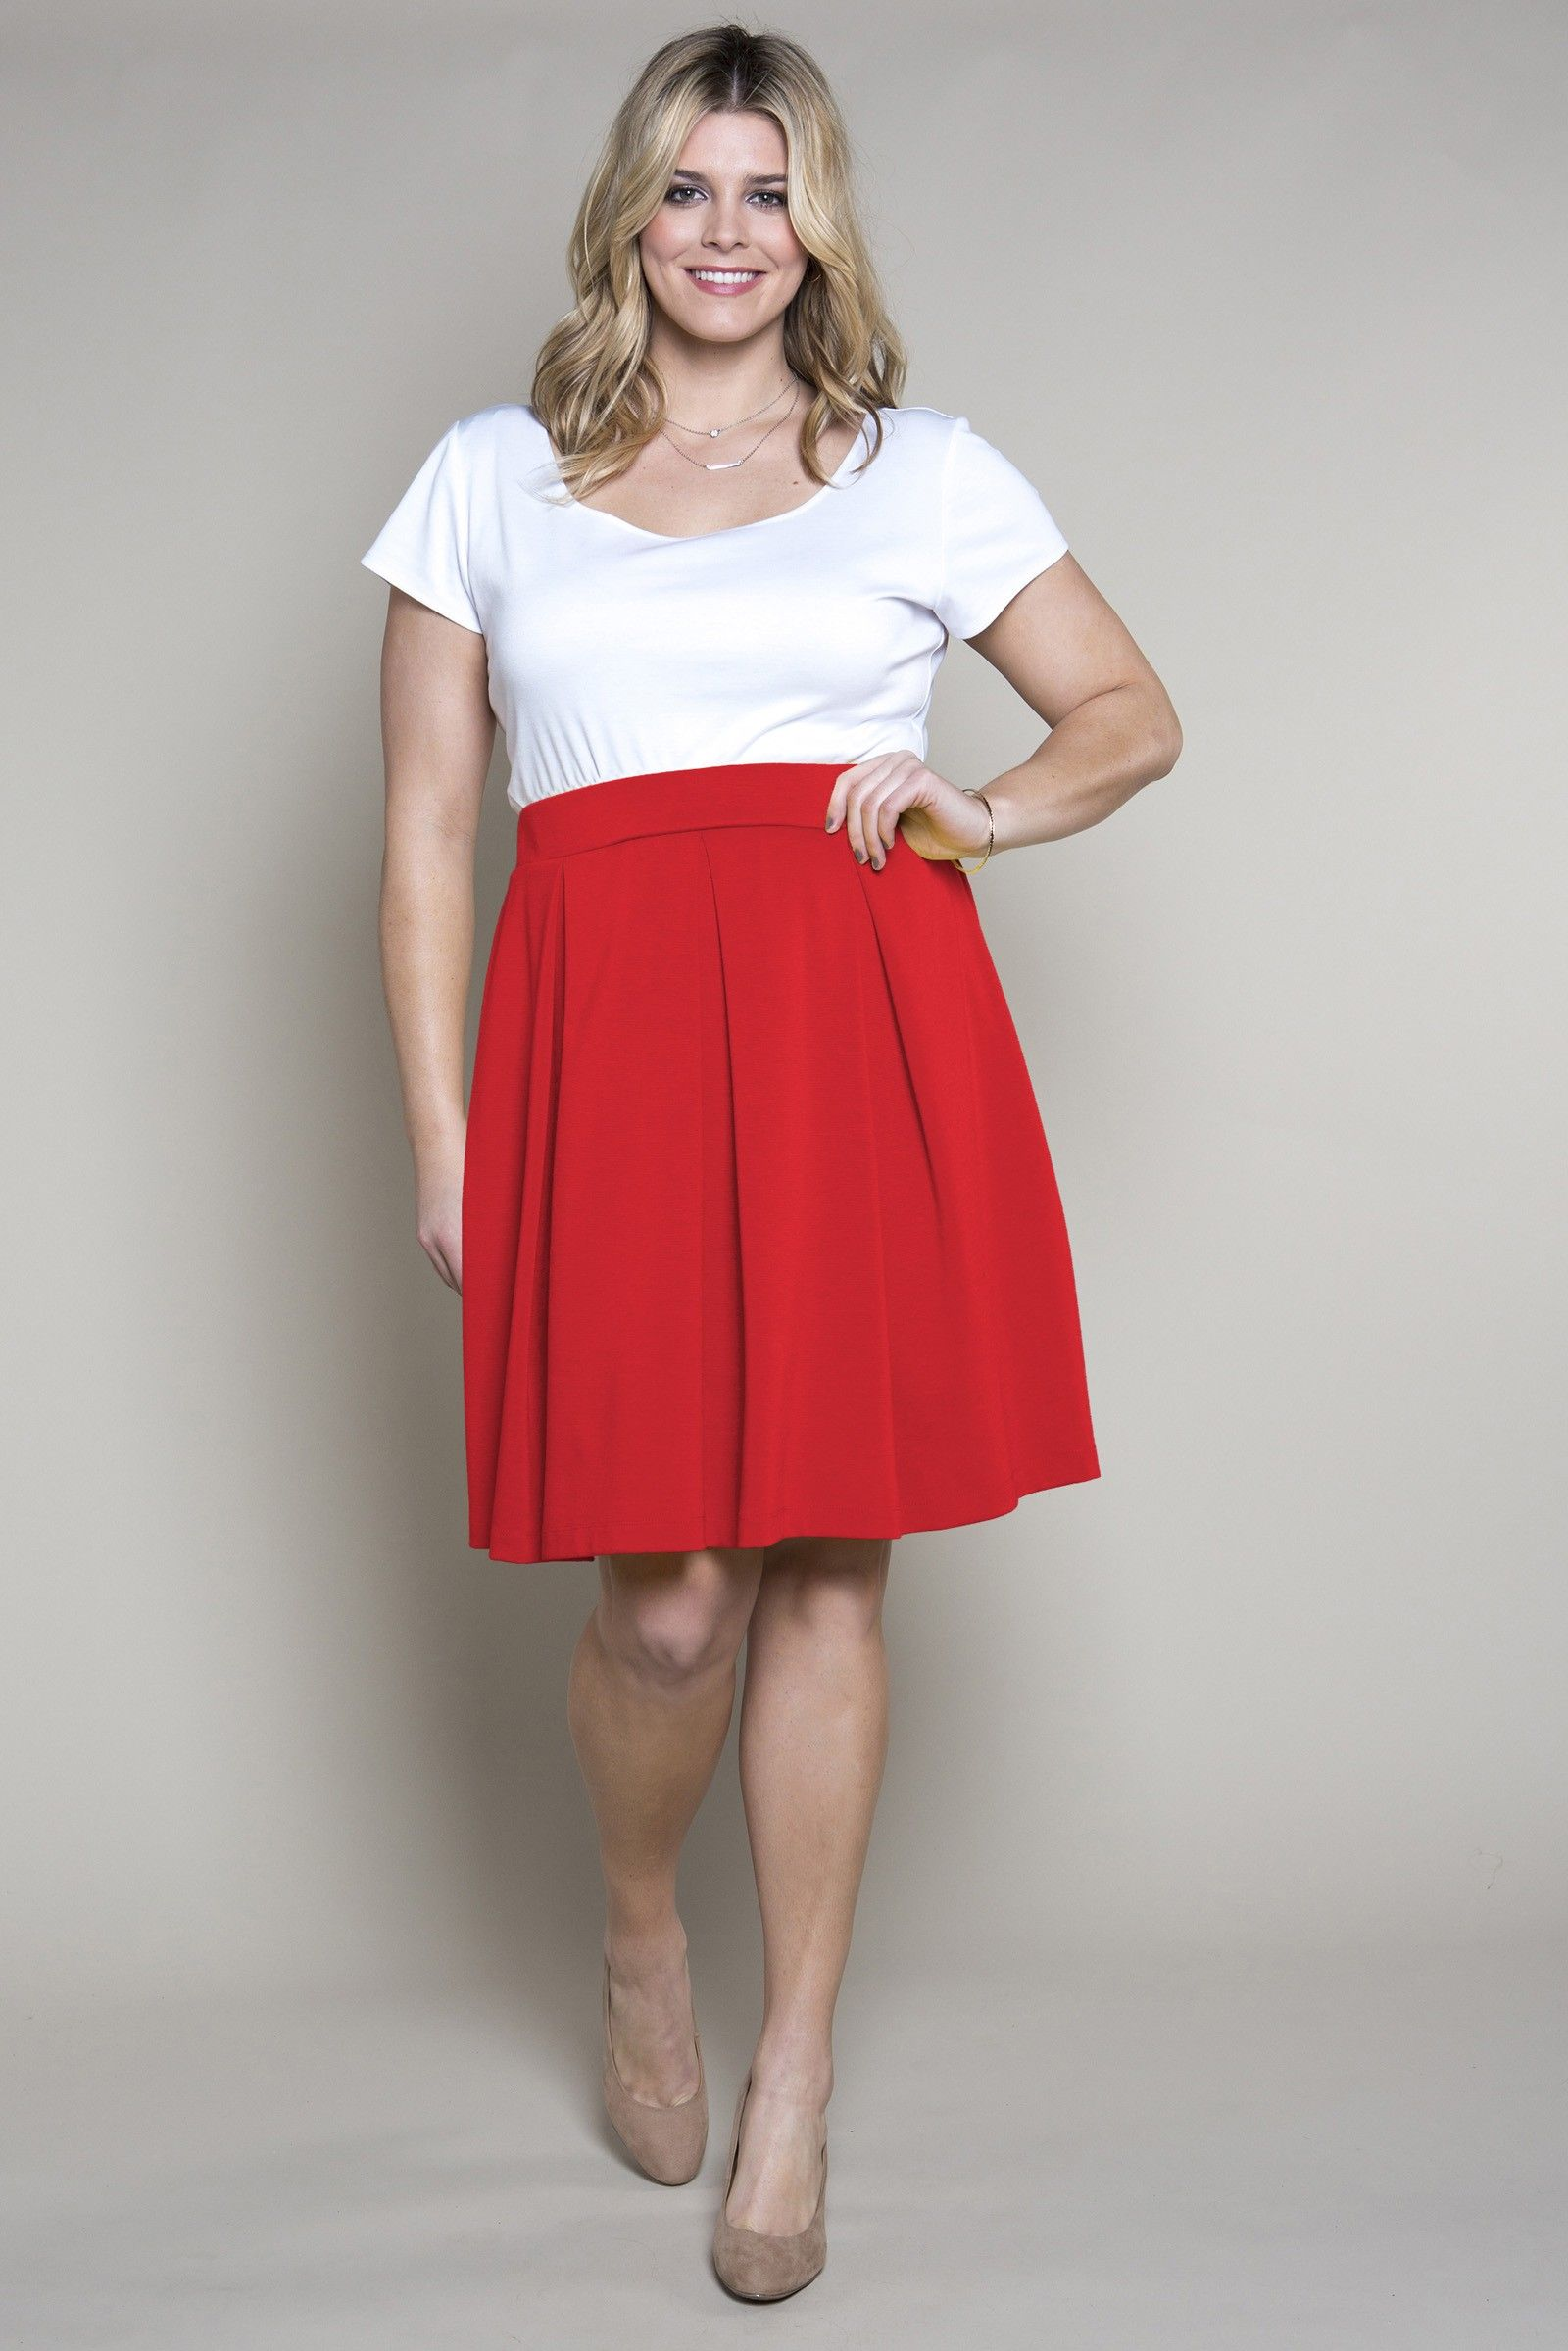 Red dress tops made